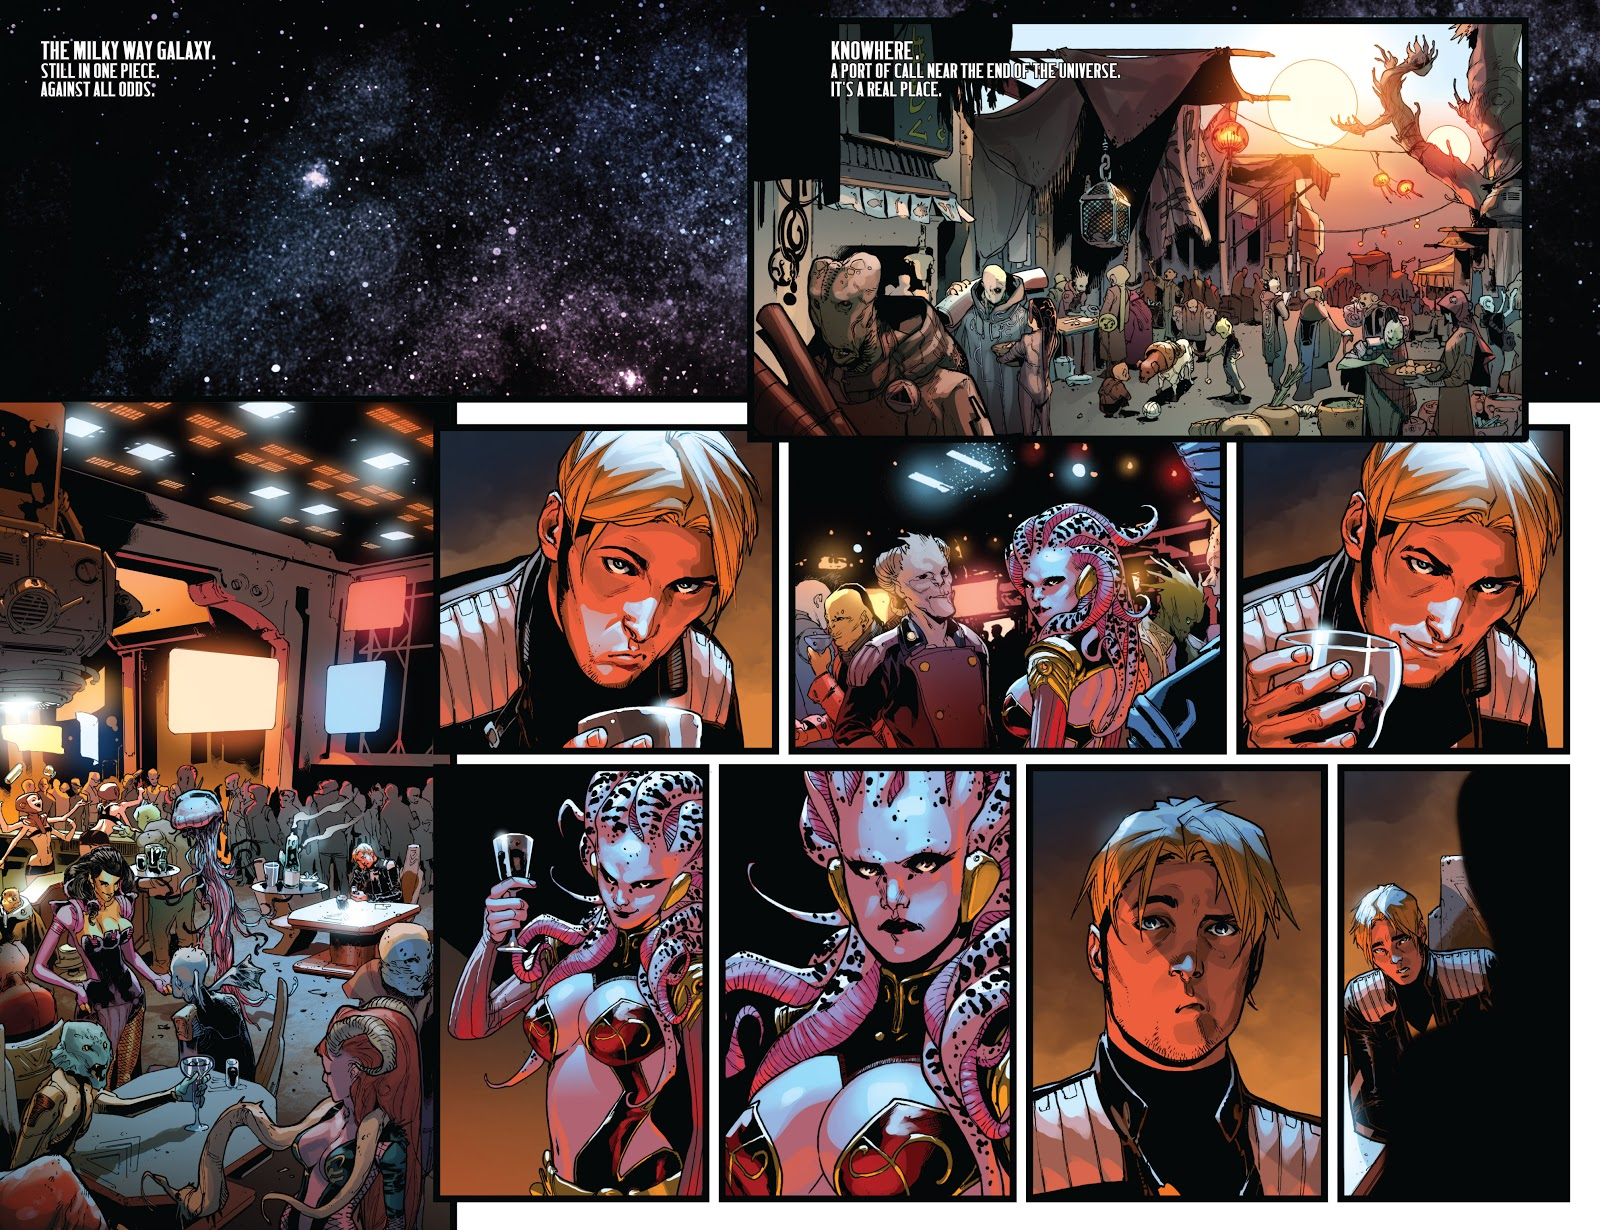 Guardians of the Galaxy by Brian Michael Bendis Omnibus review